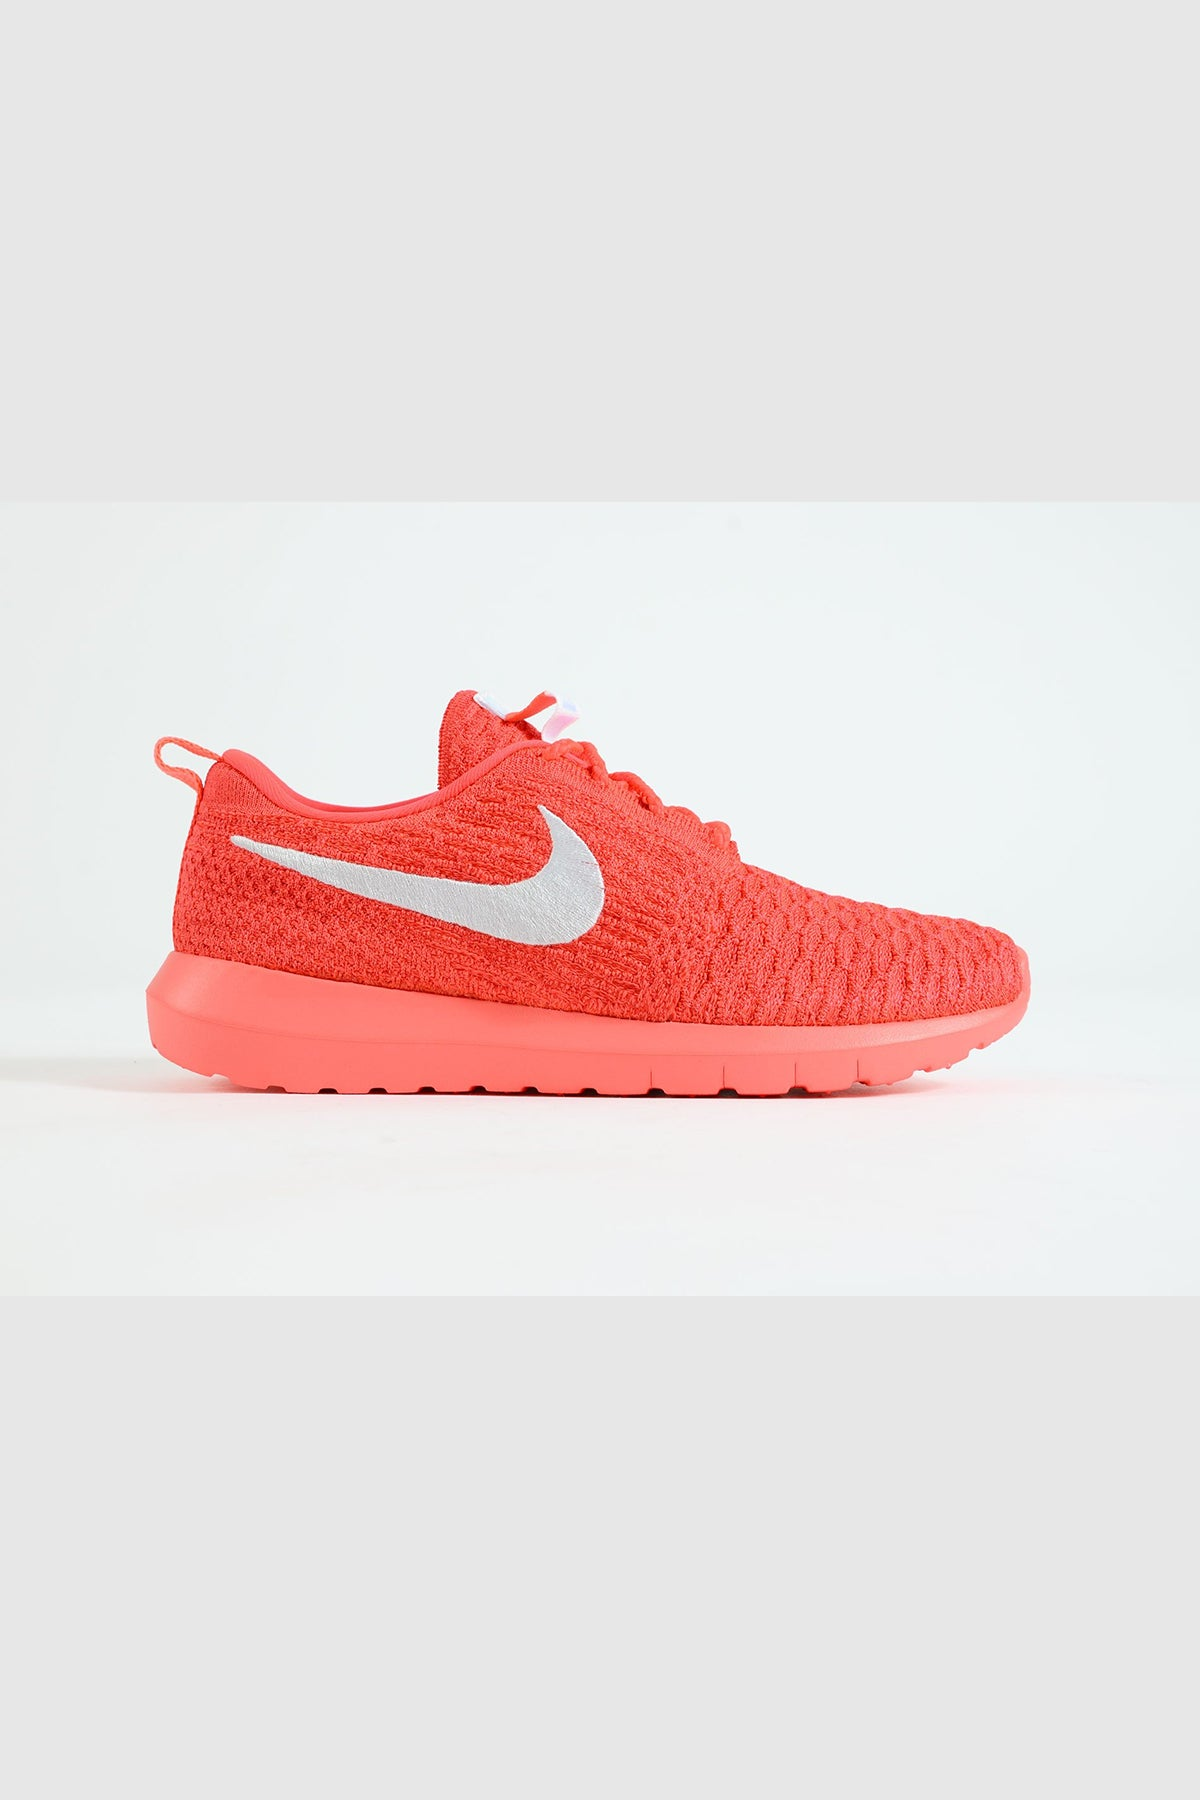 Nike - Roshe NM Flyknit Women (Bright Crimson - University Red)